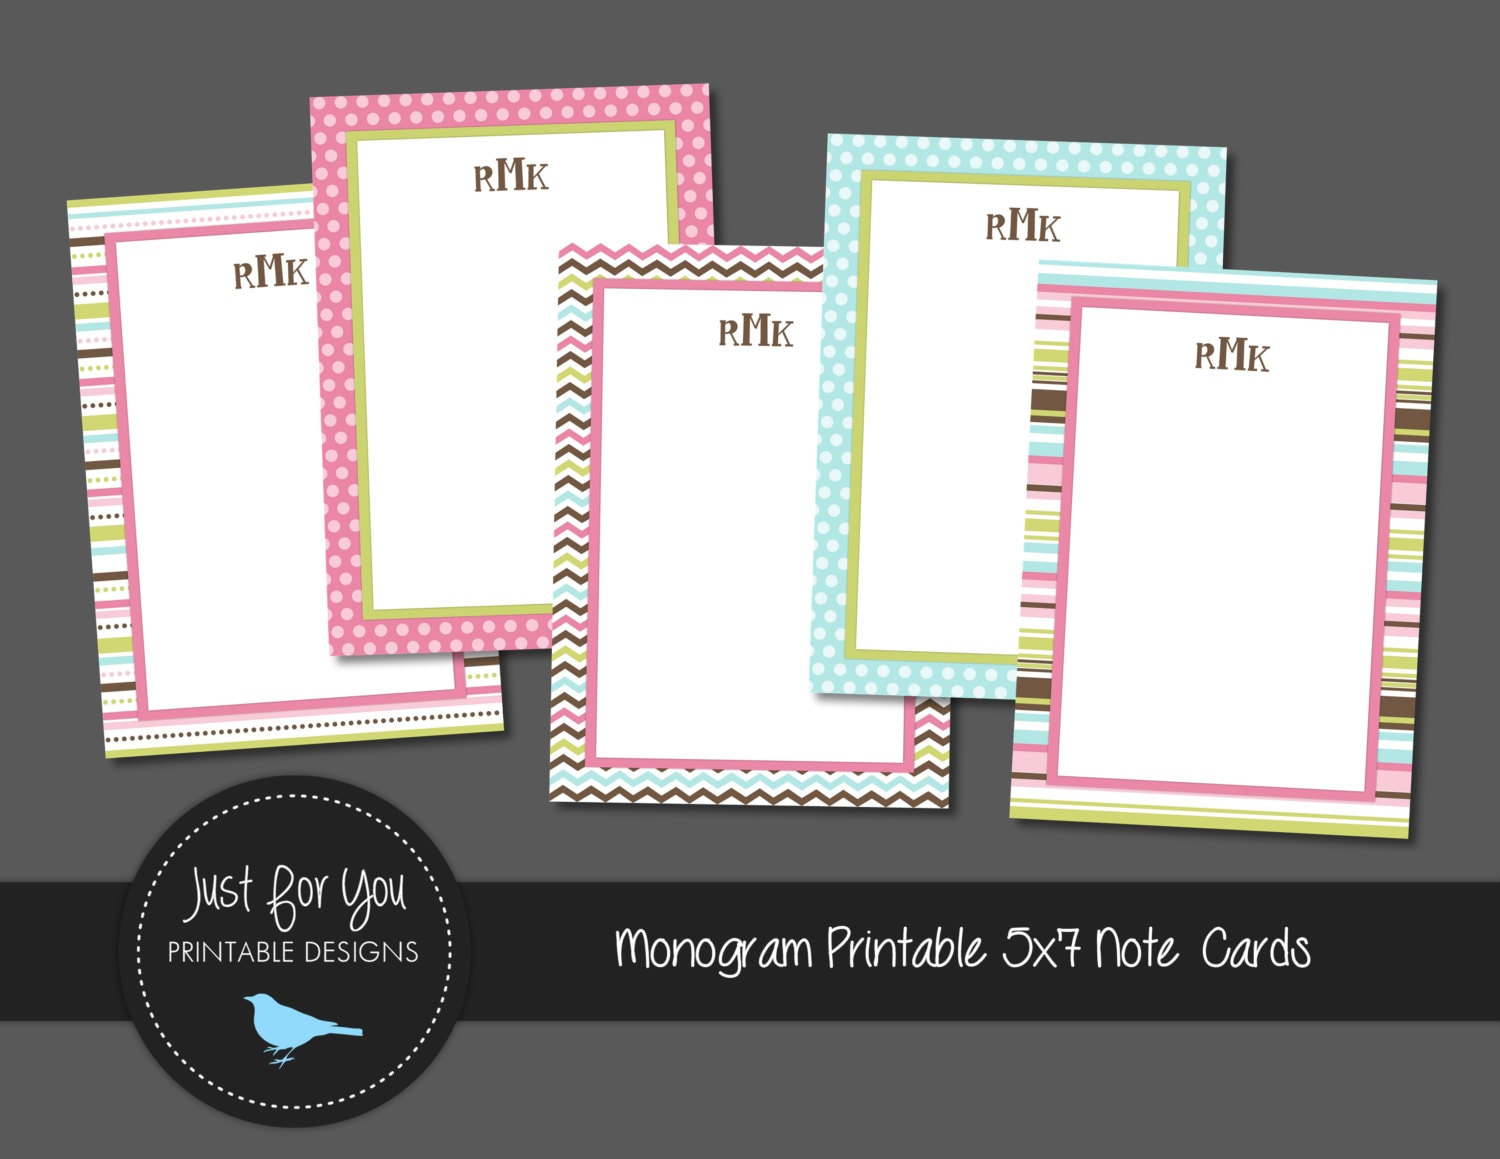 printable stationary note cards for girls with monogram 5x7